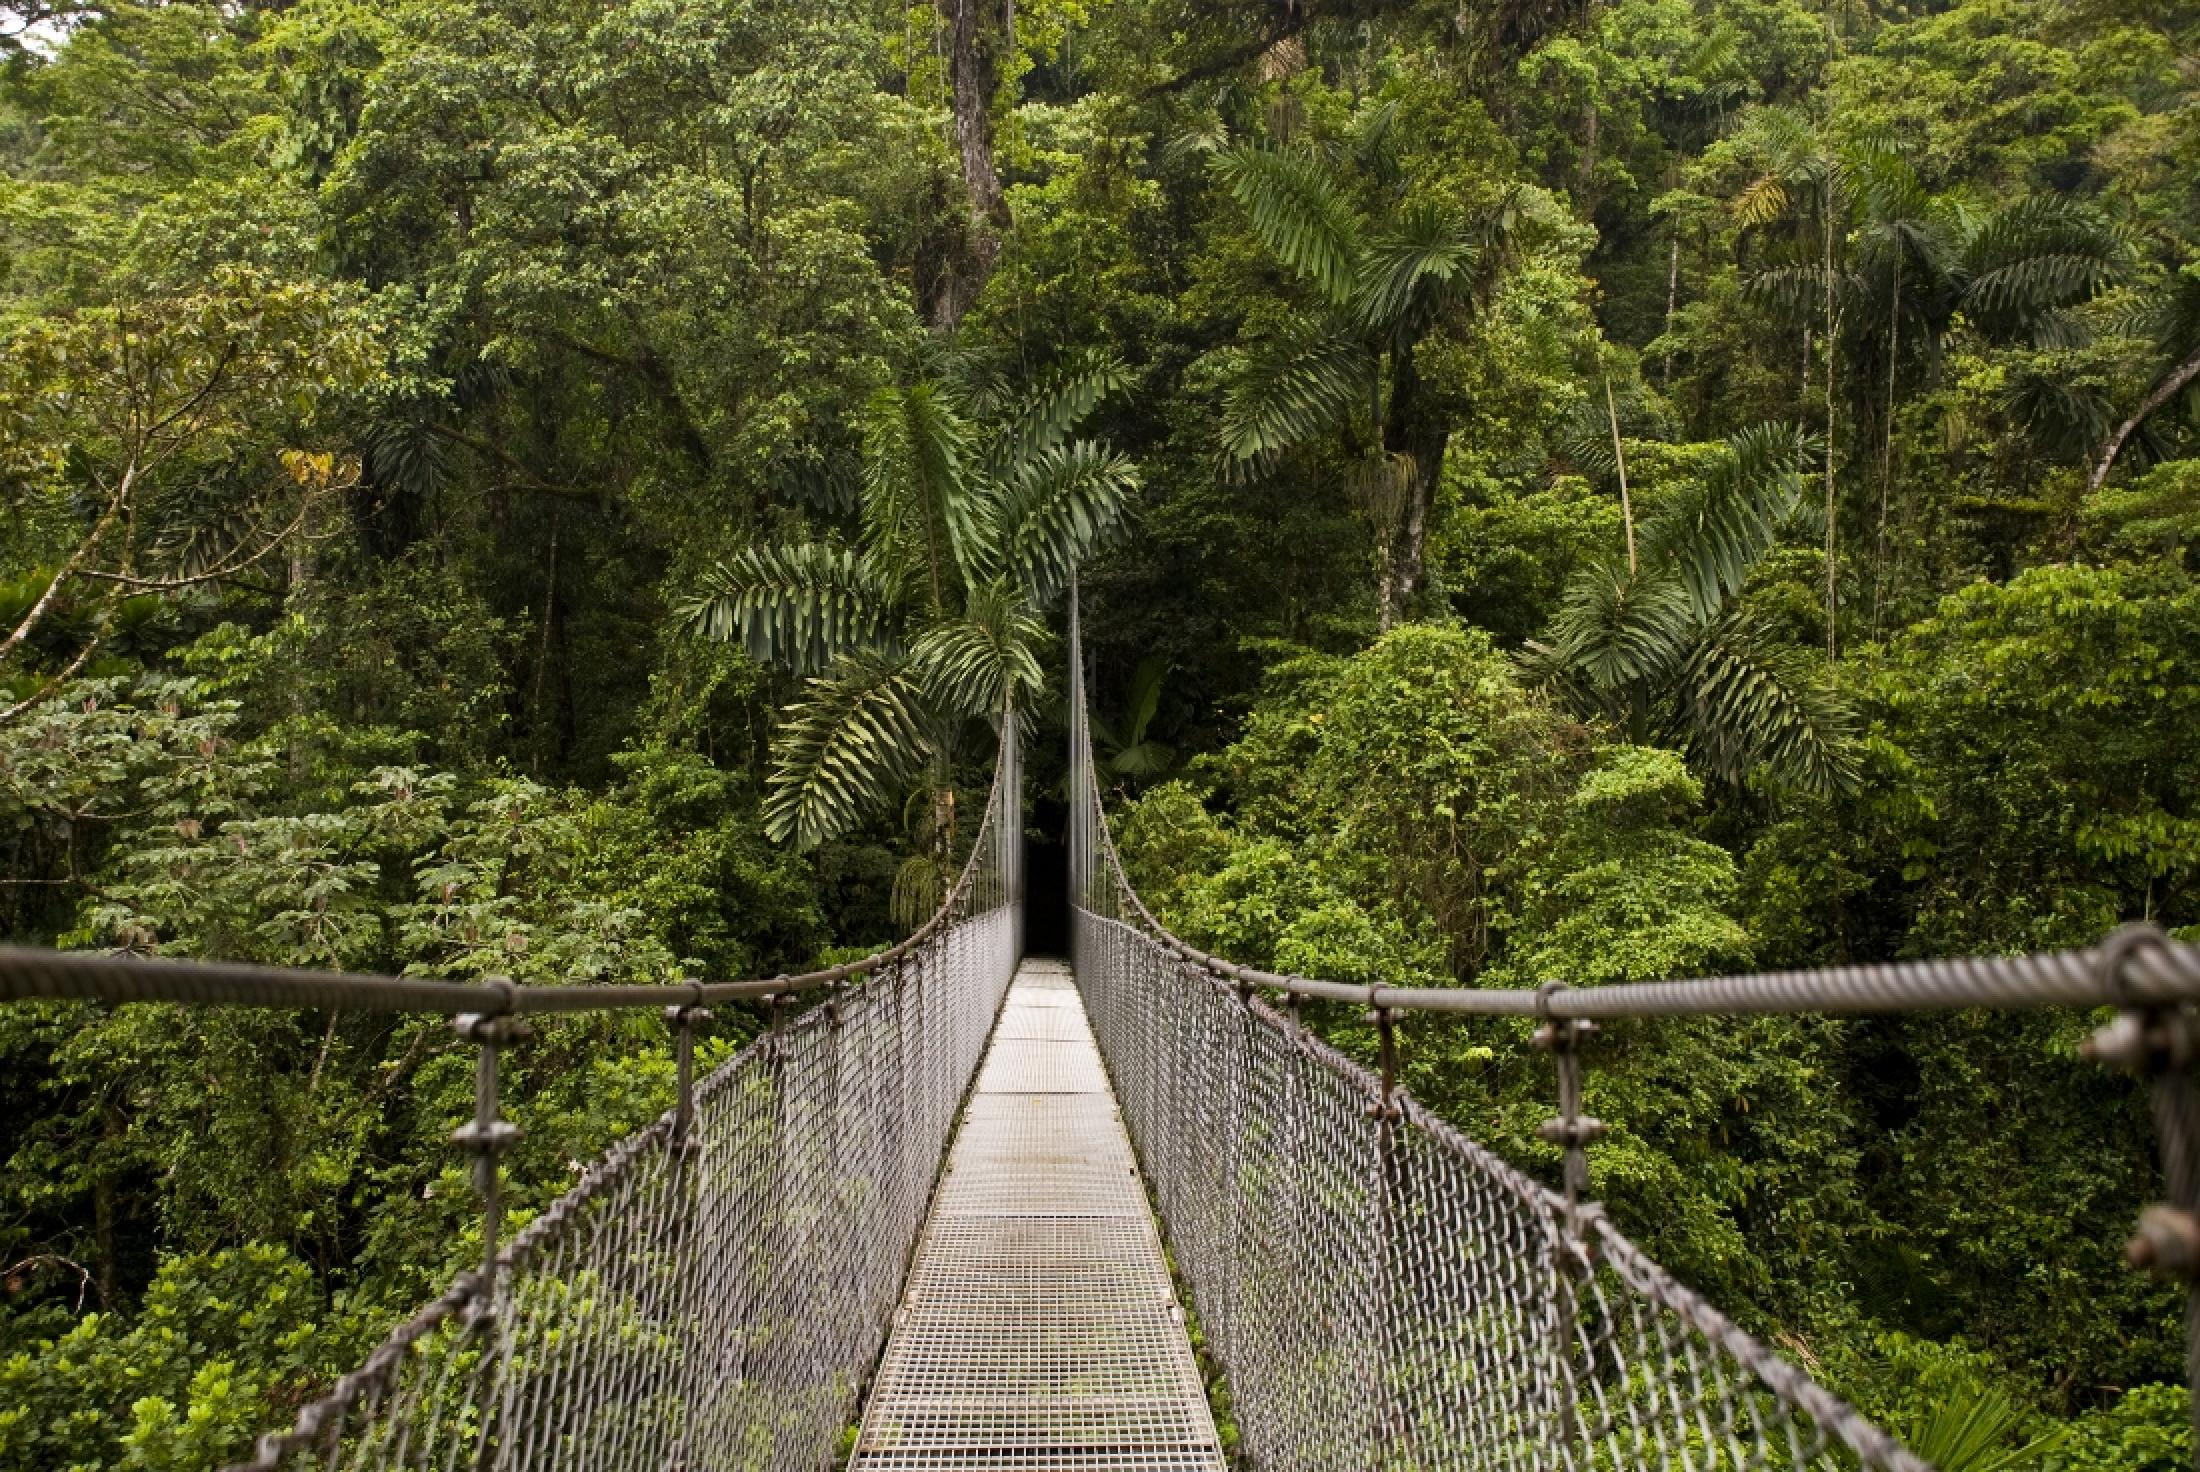 2 in 1 Hanging Bridges & Fortuna Waterfall